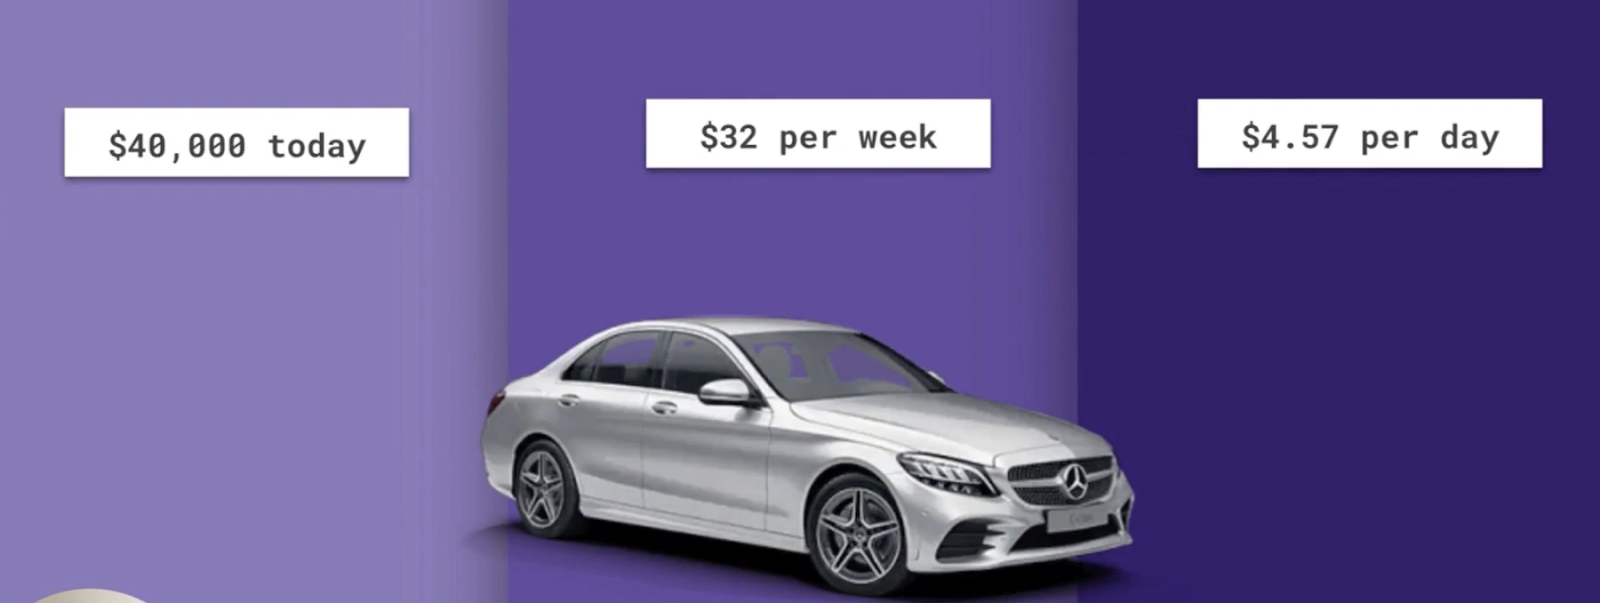 A cost of a Mercedes Benz broke down using hyperbolic discounting.